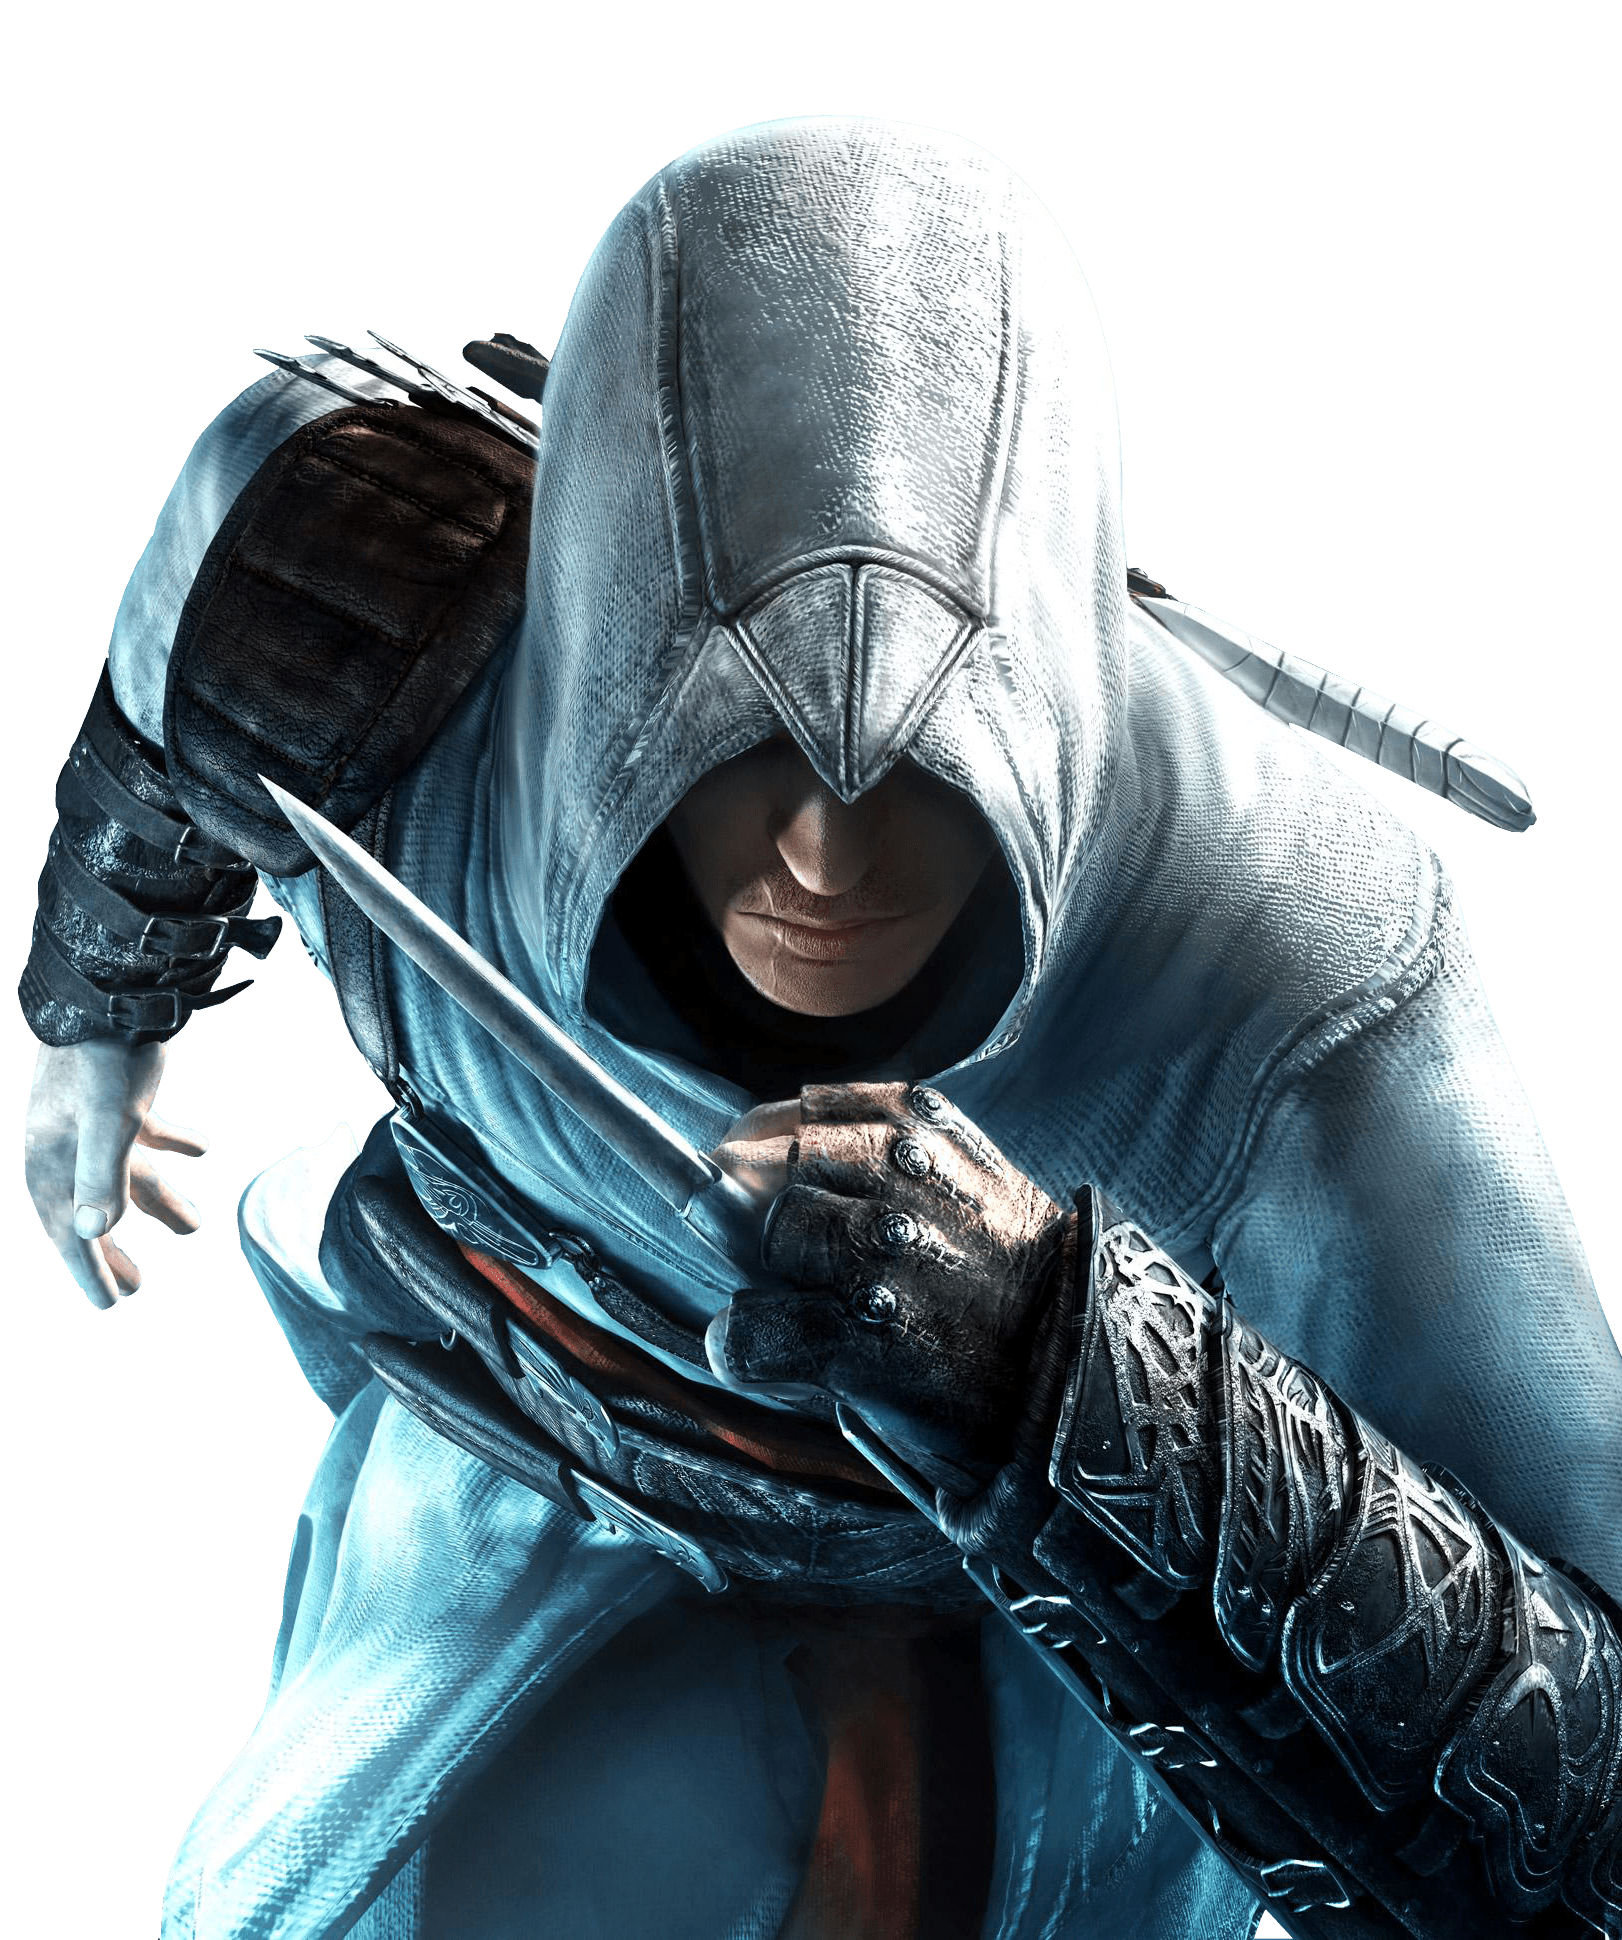 Assassin S Creed Assassins Creed Game Assassin S Creed Wallpaper Assassins Creed